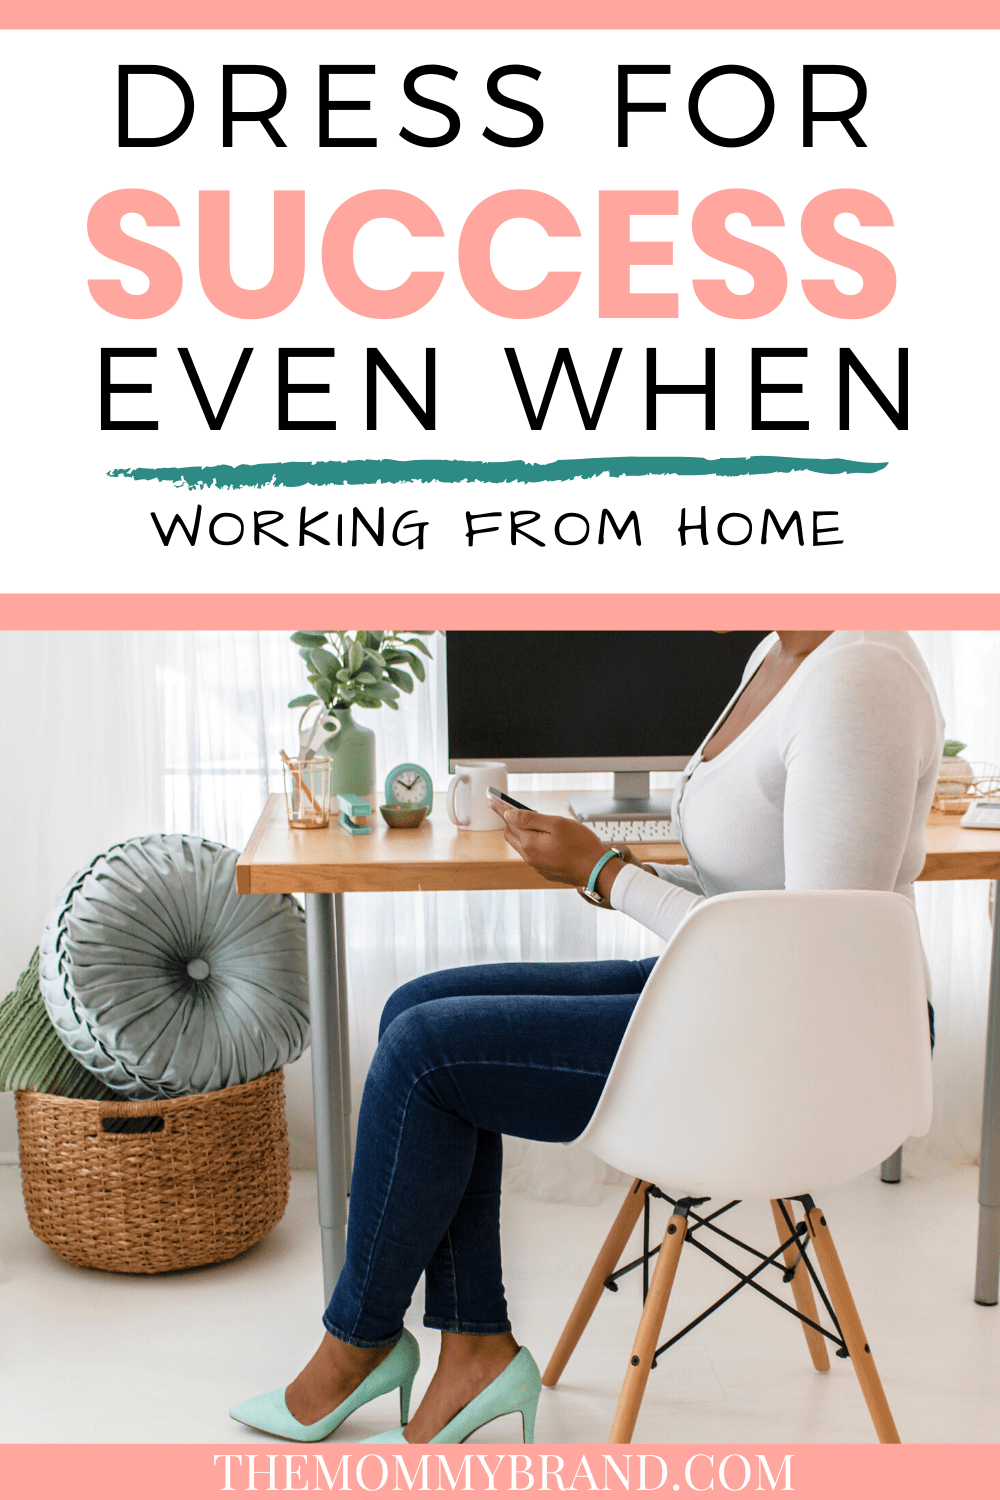 Dress for Success Even When Working from Home